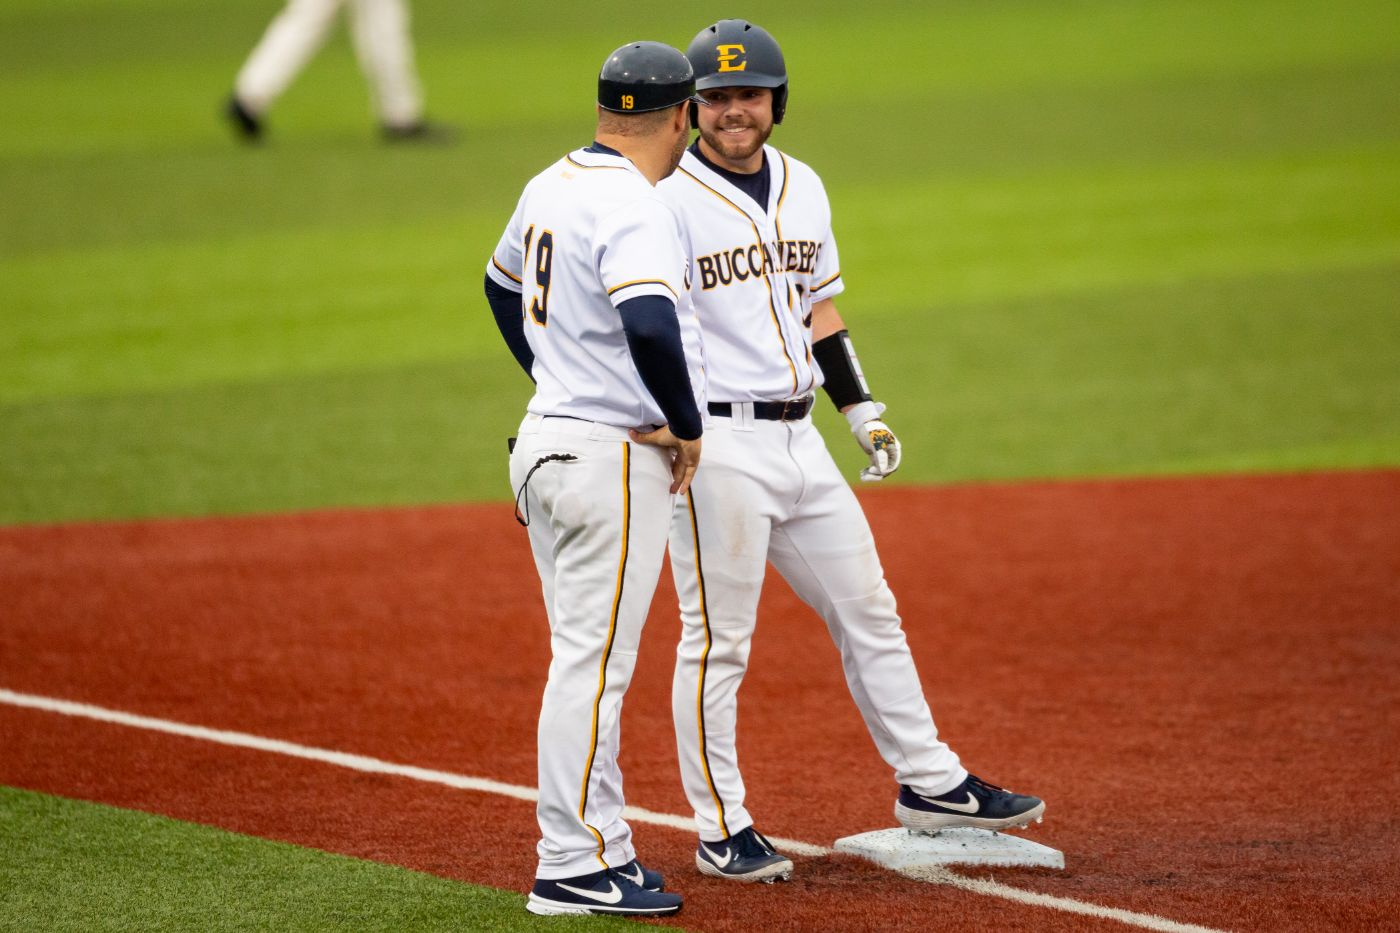 Bucs overcome five run deficit to down Catamounts